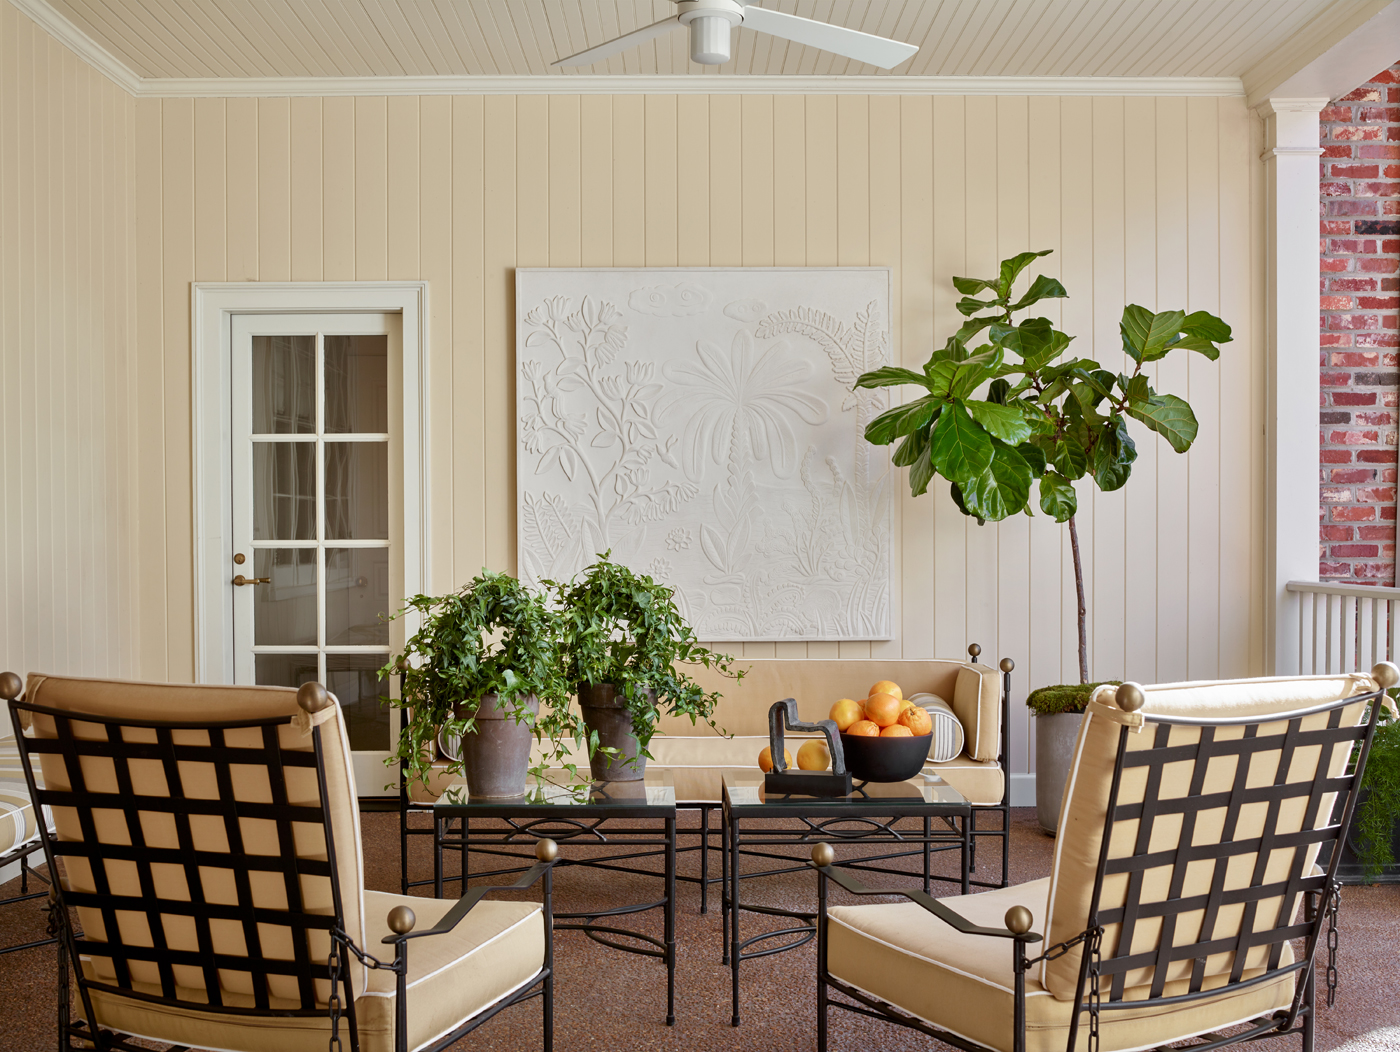 Outdoor covered patio with iron chairs, occasional tables, and settee; chairs have exposed latticework grid back | Savage Interior Design